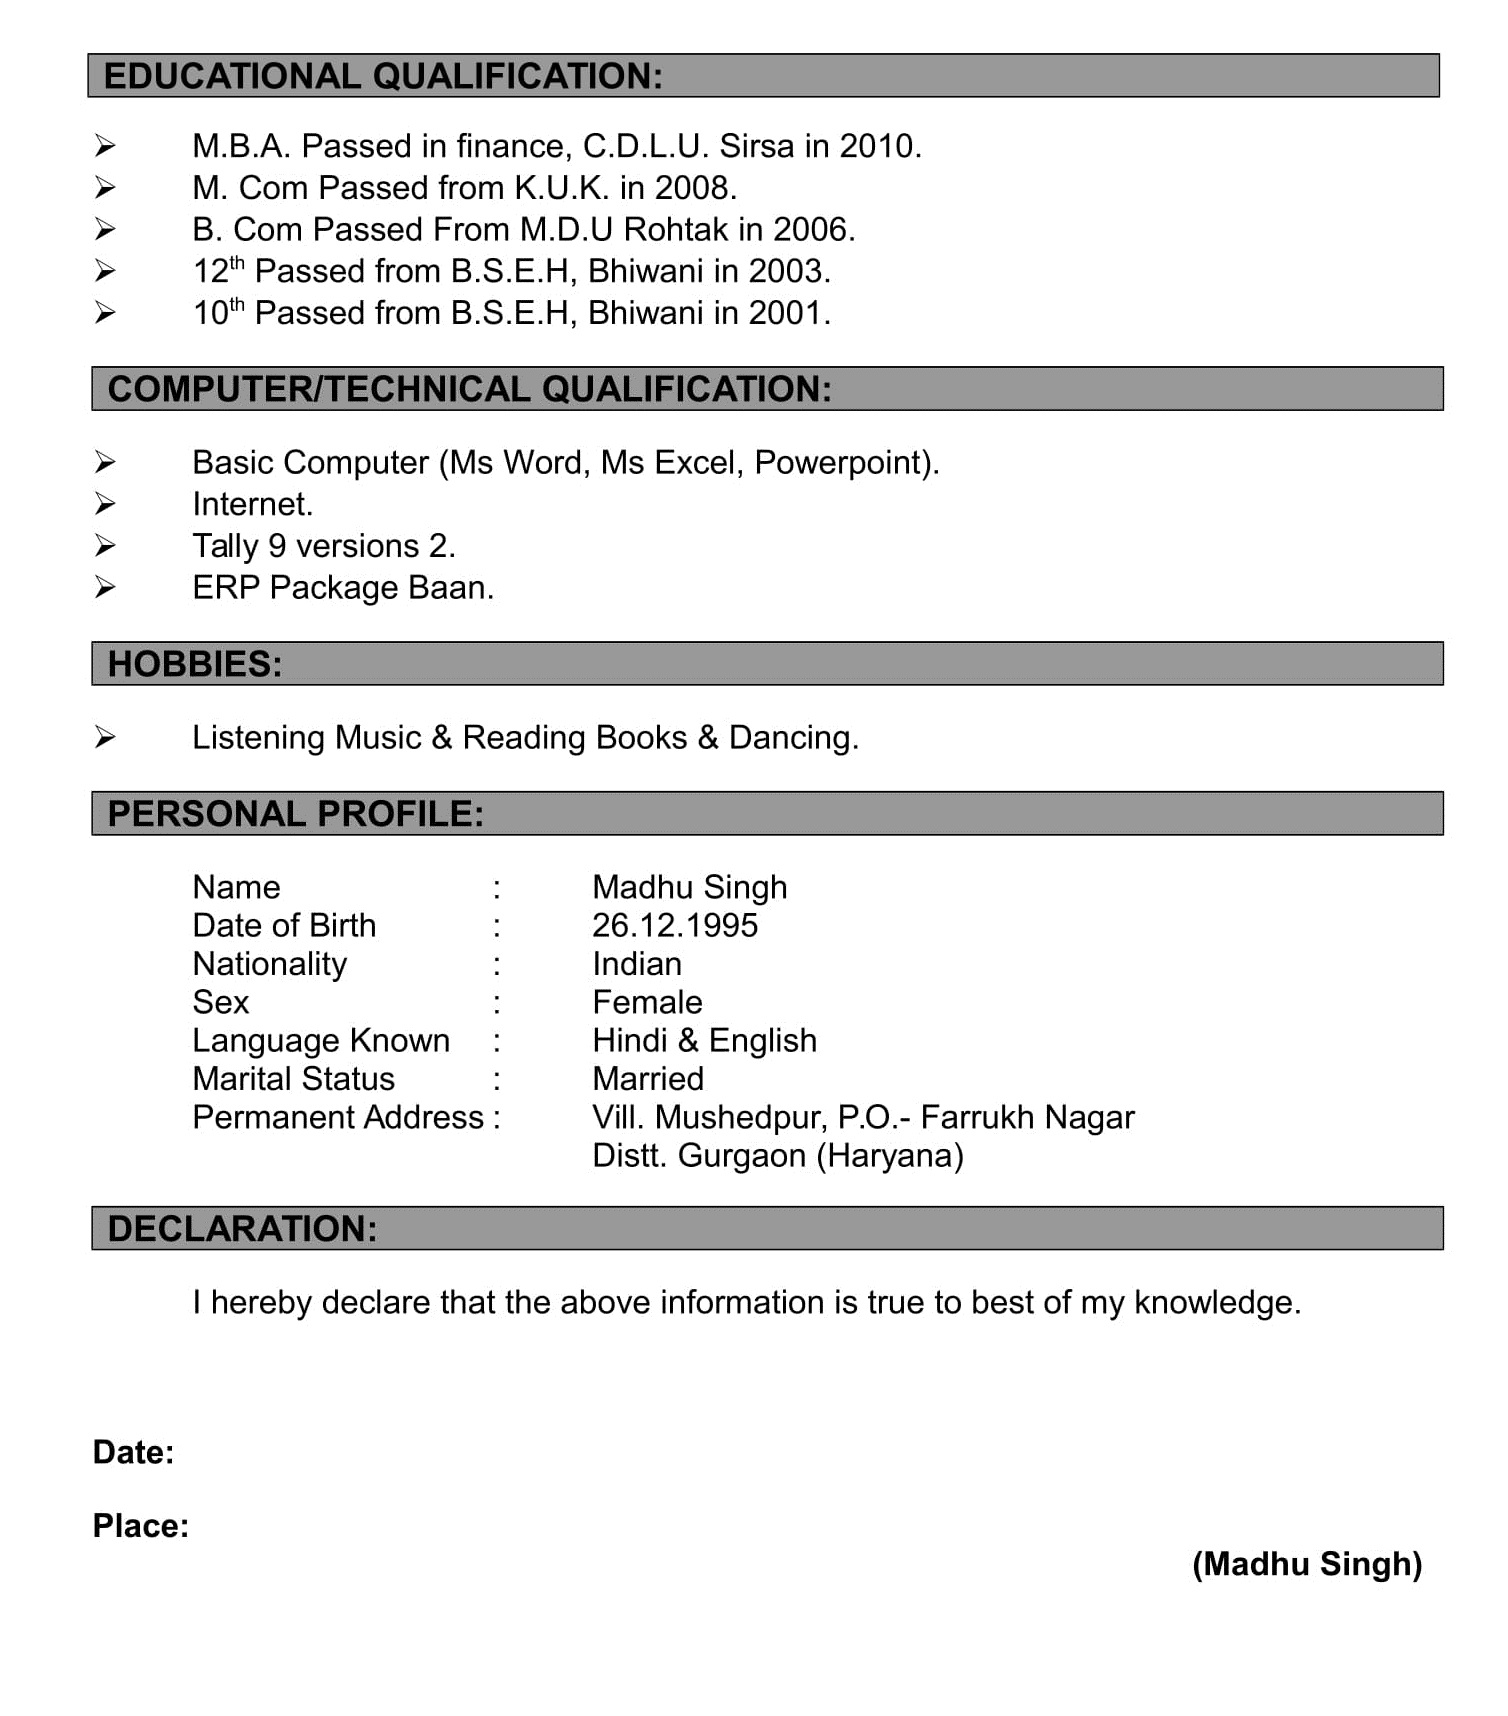 resume formats making qualification format photoshop template free upload sites activity Resume Resume Qualification Format